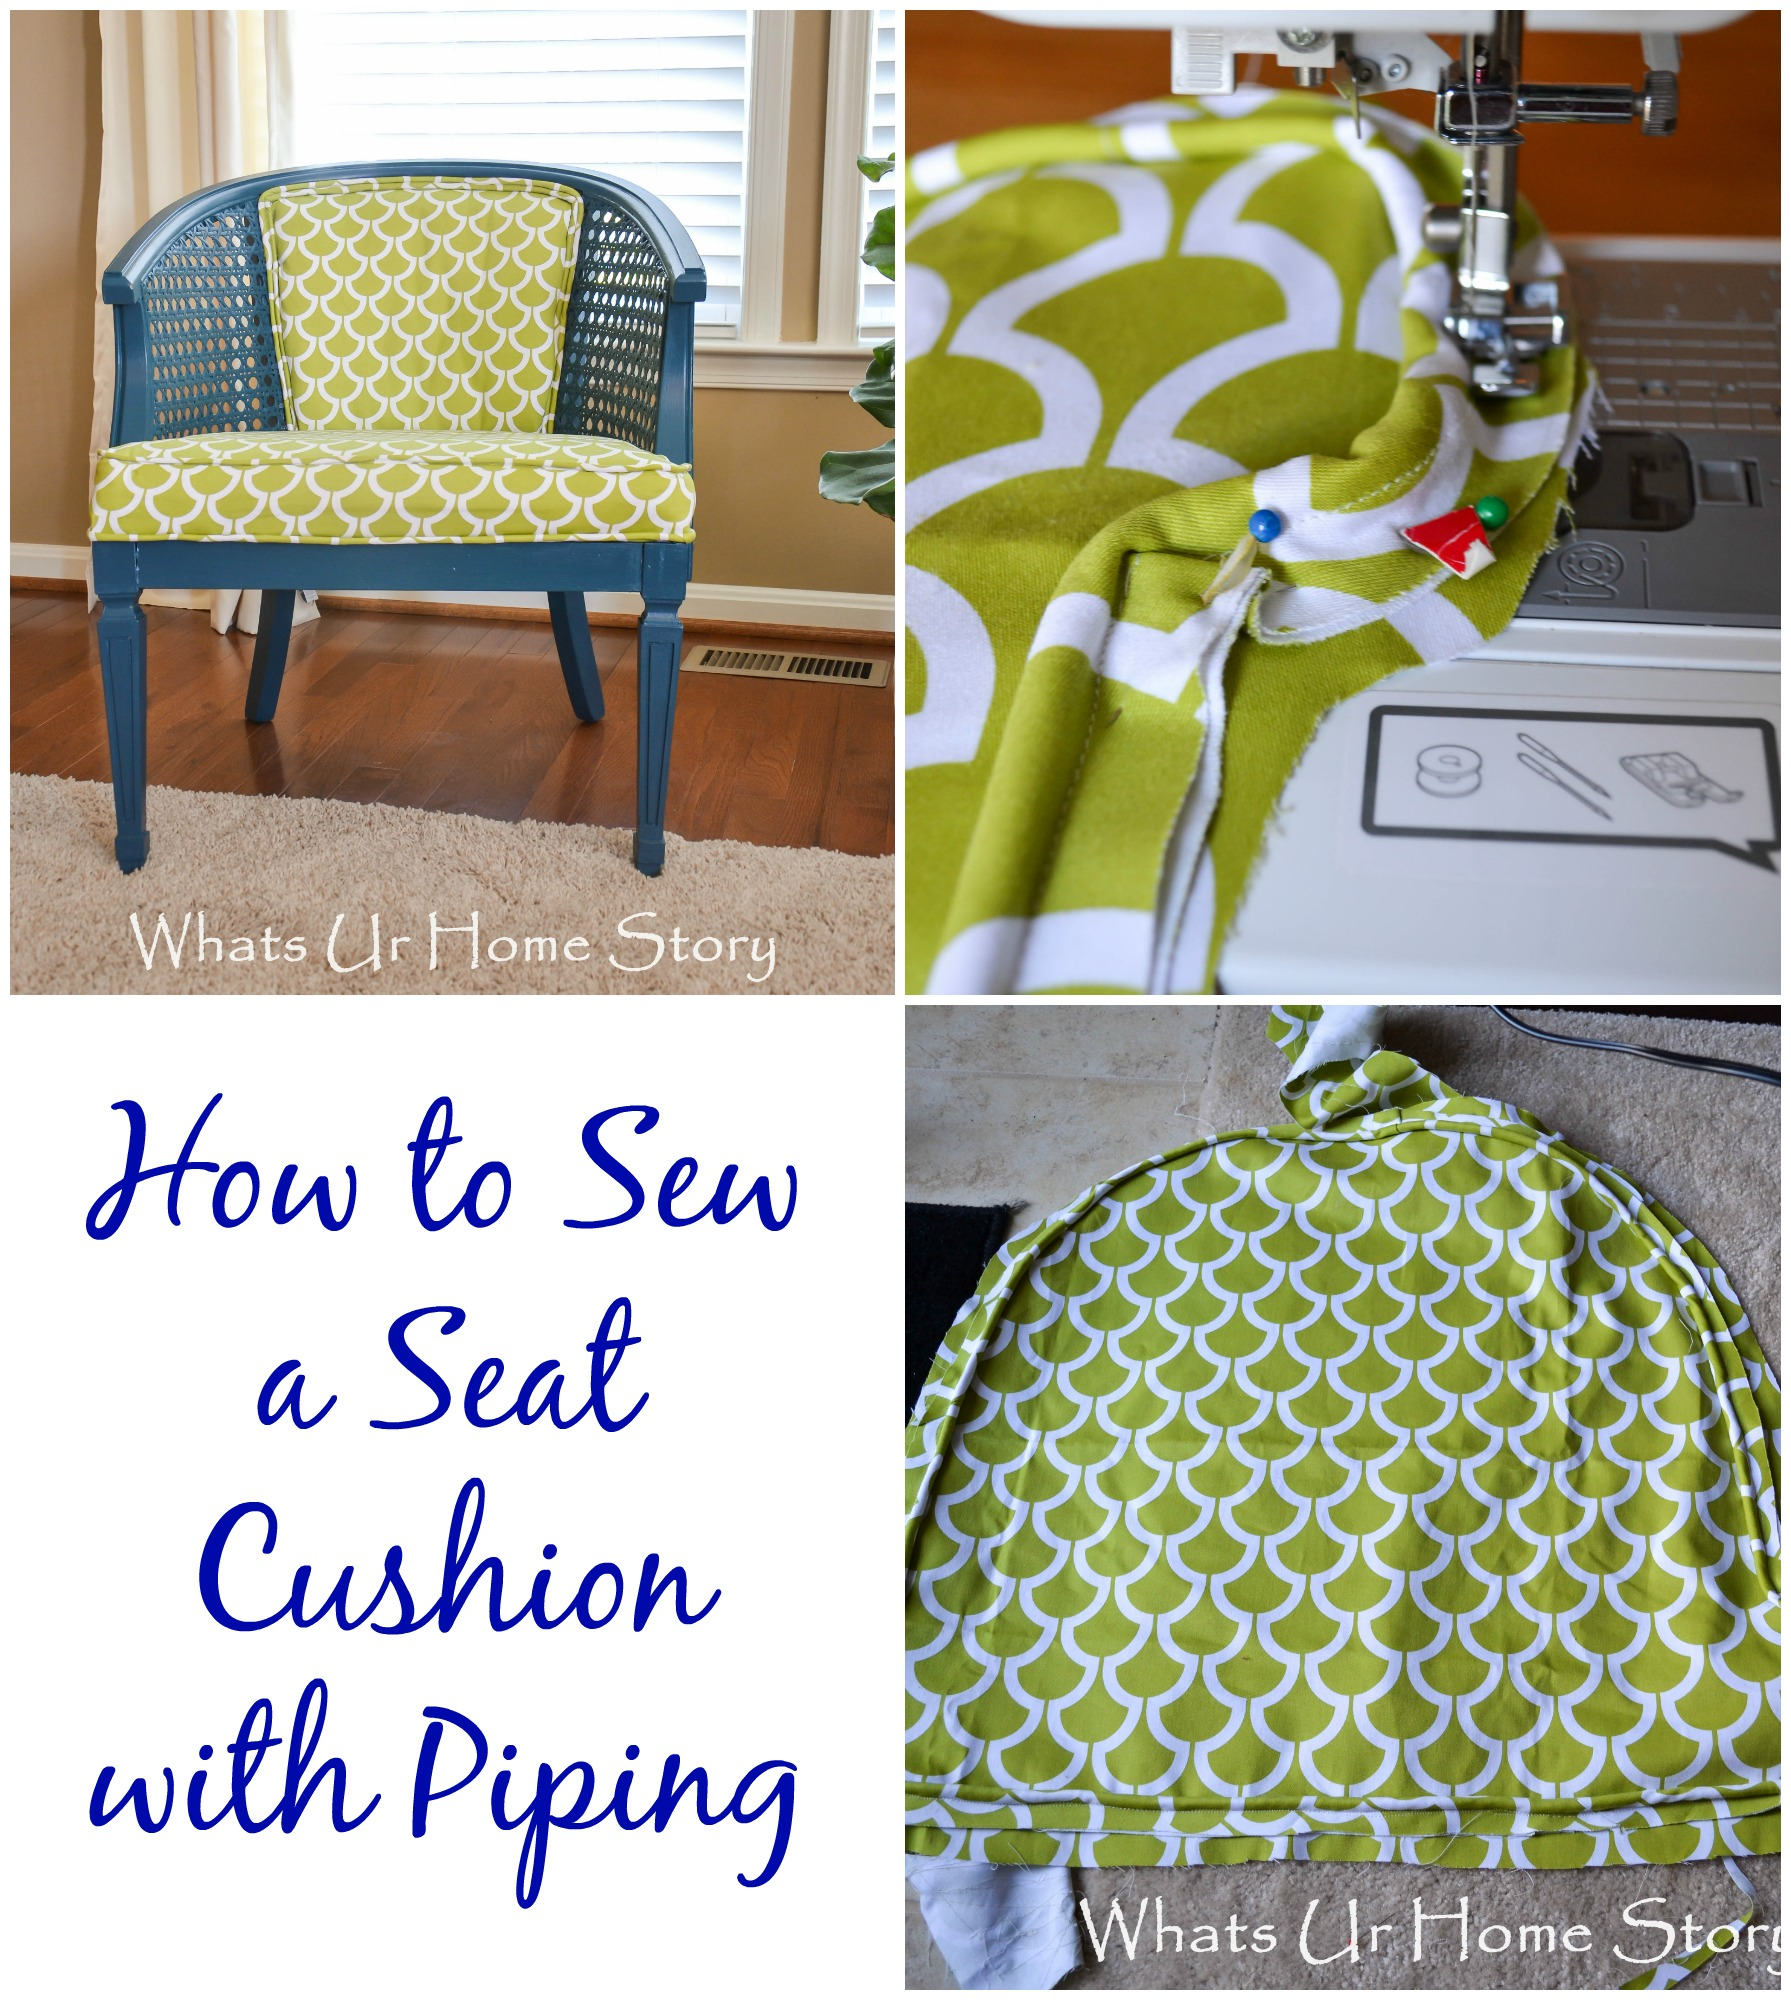 sewing patterns for chair cushions santa covers how to sew a seat cushion with piping whats ur home story